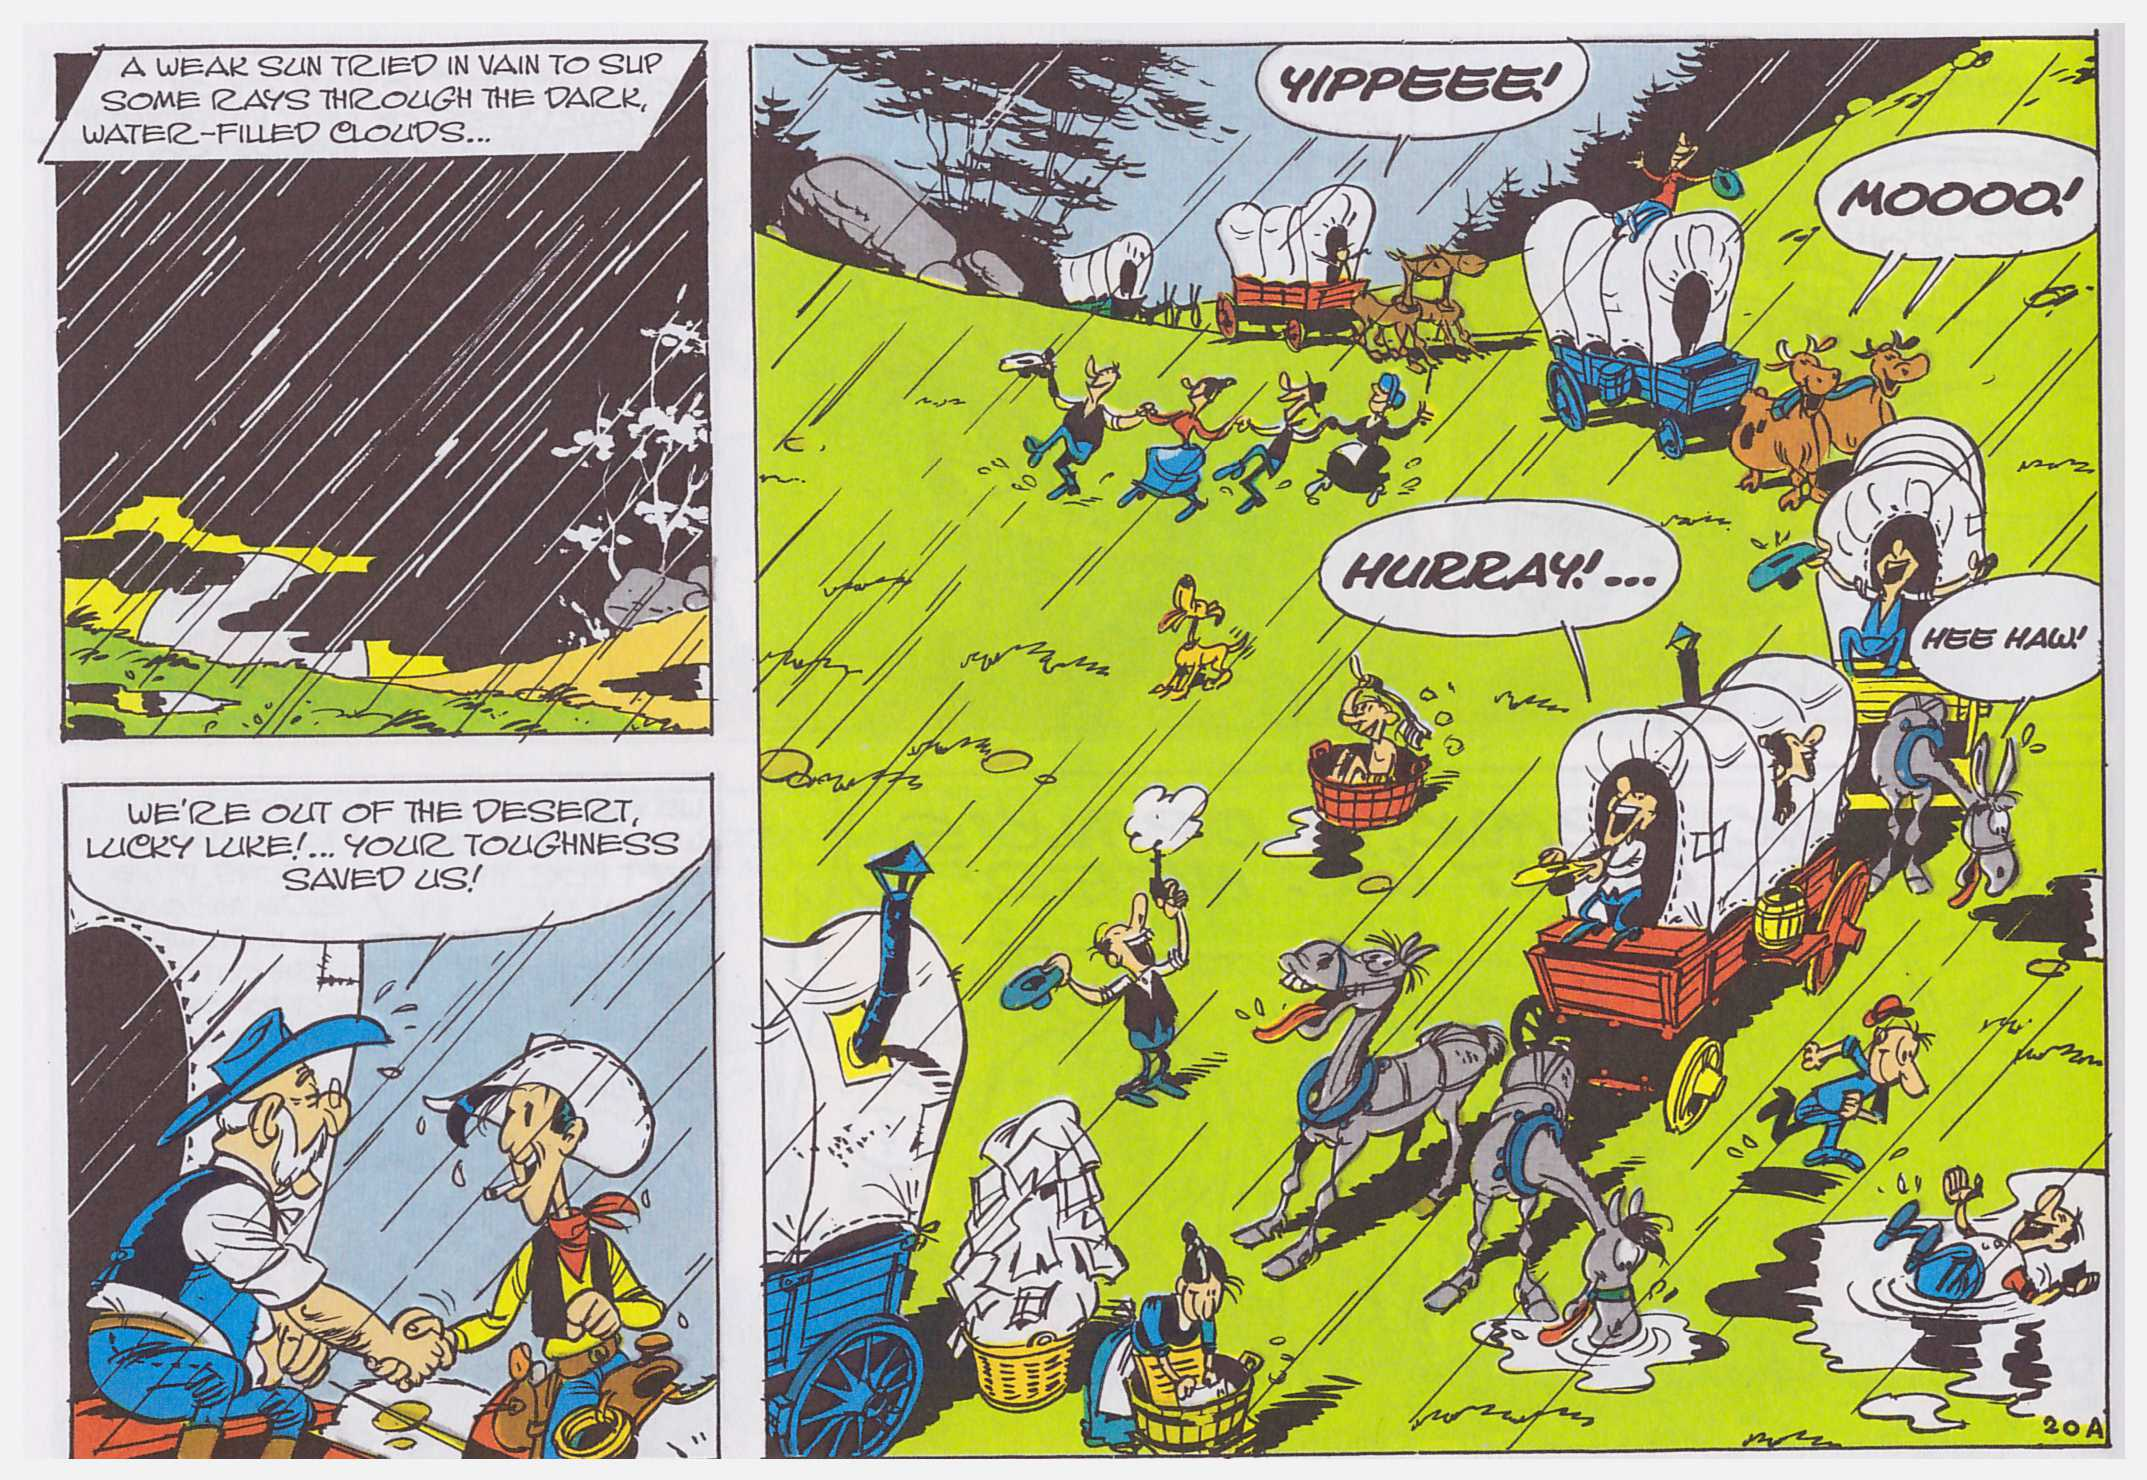 Lucky Luke The Wagon review